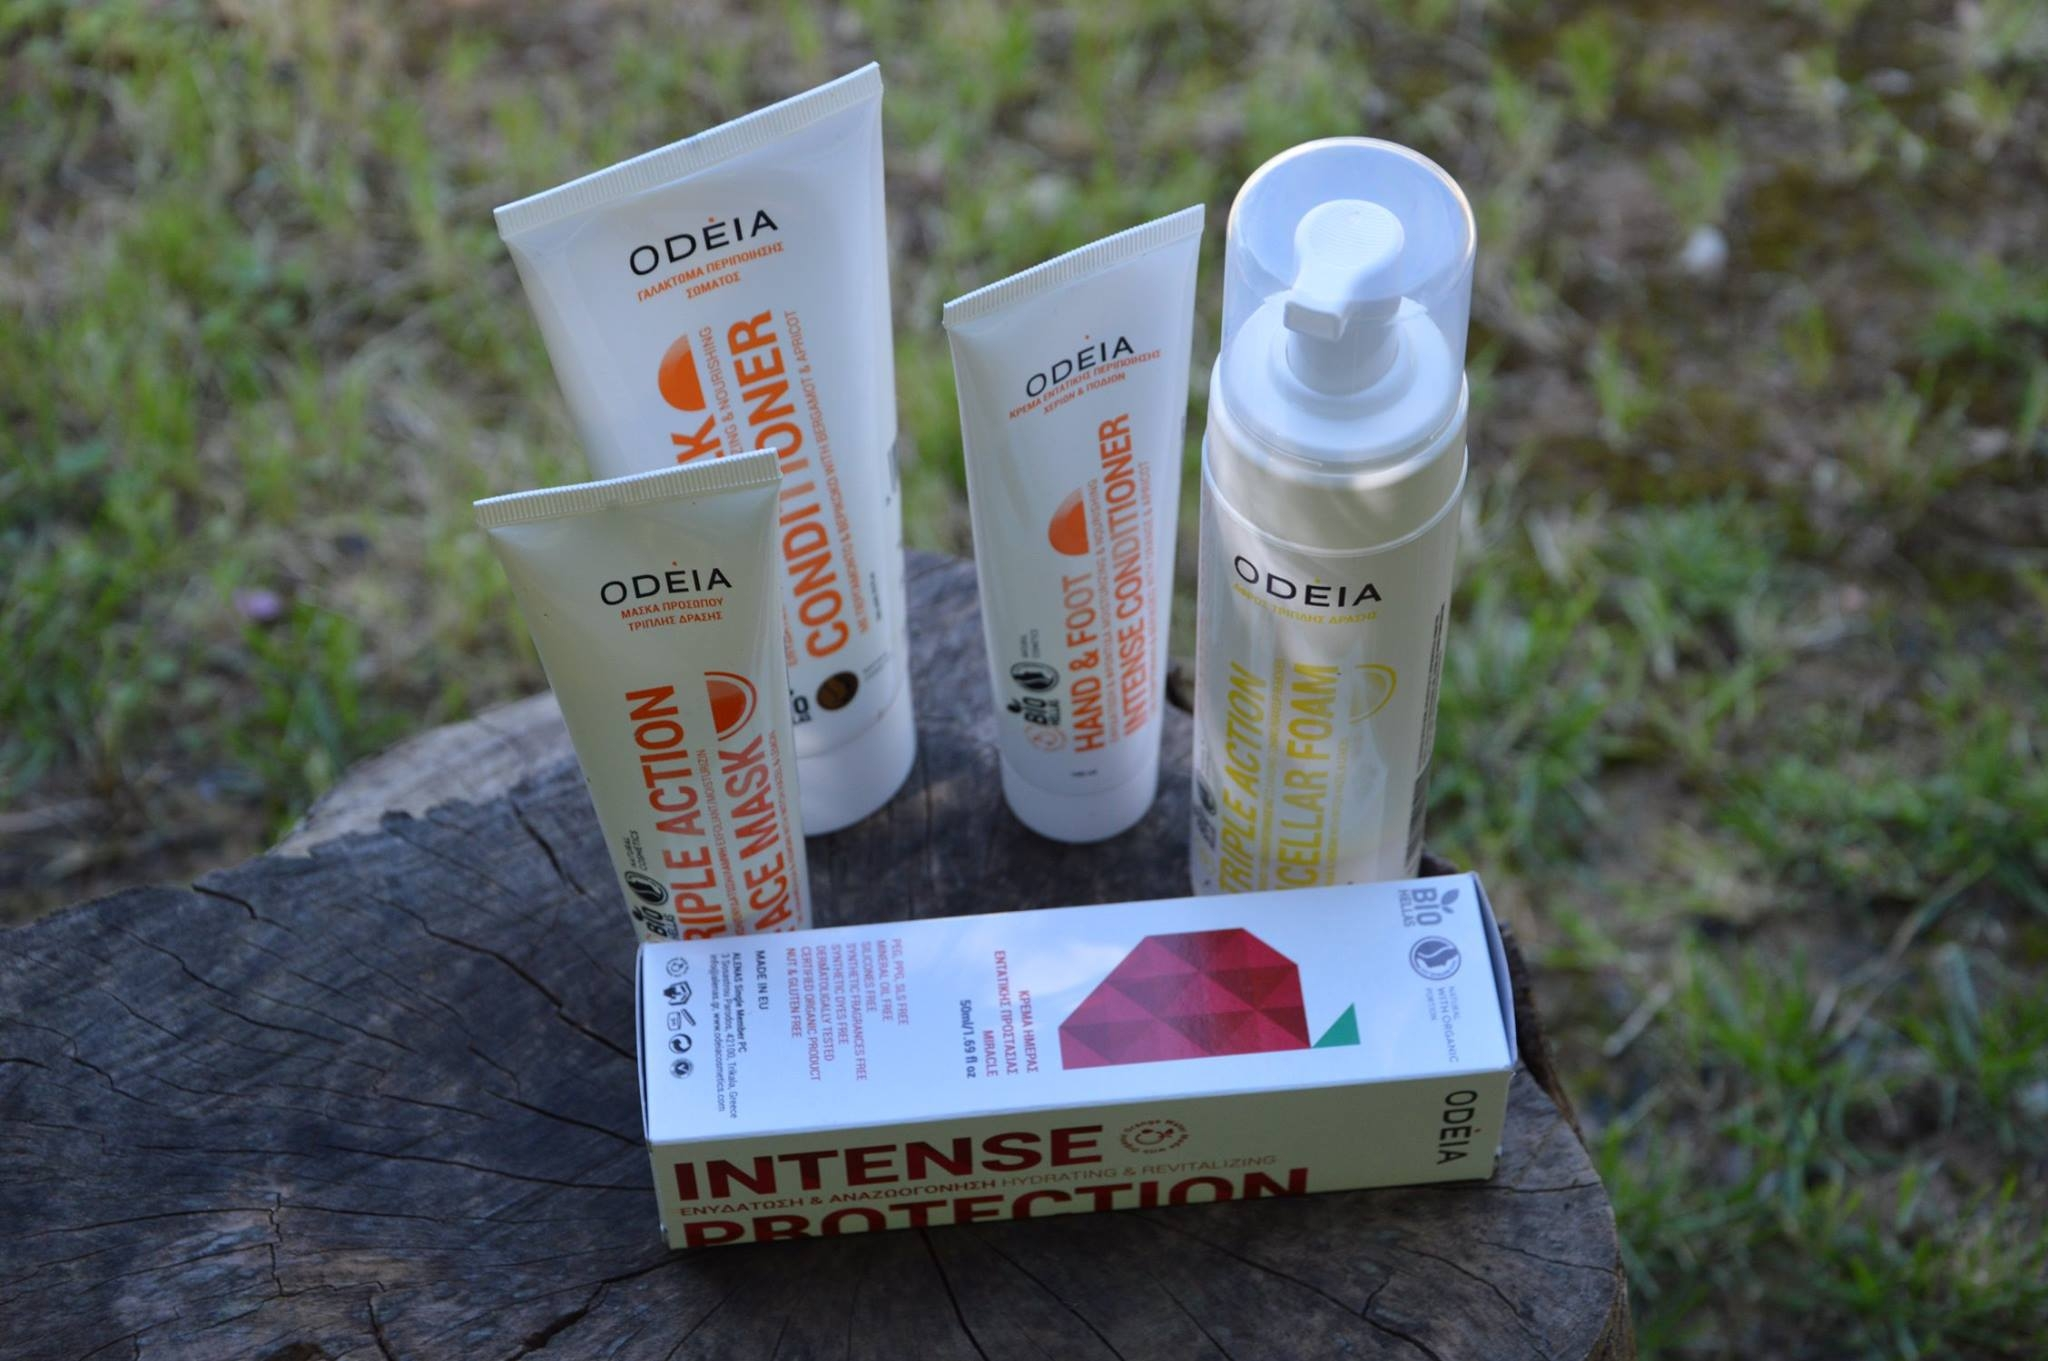 A day close to mother-nature with Odeia Eco Cosmetics.